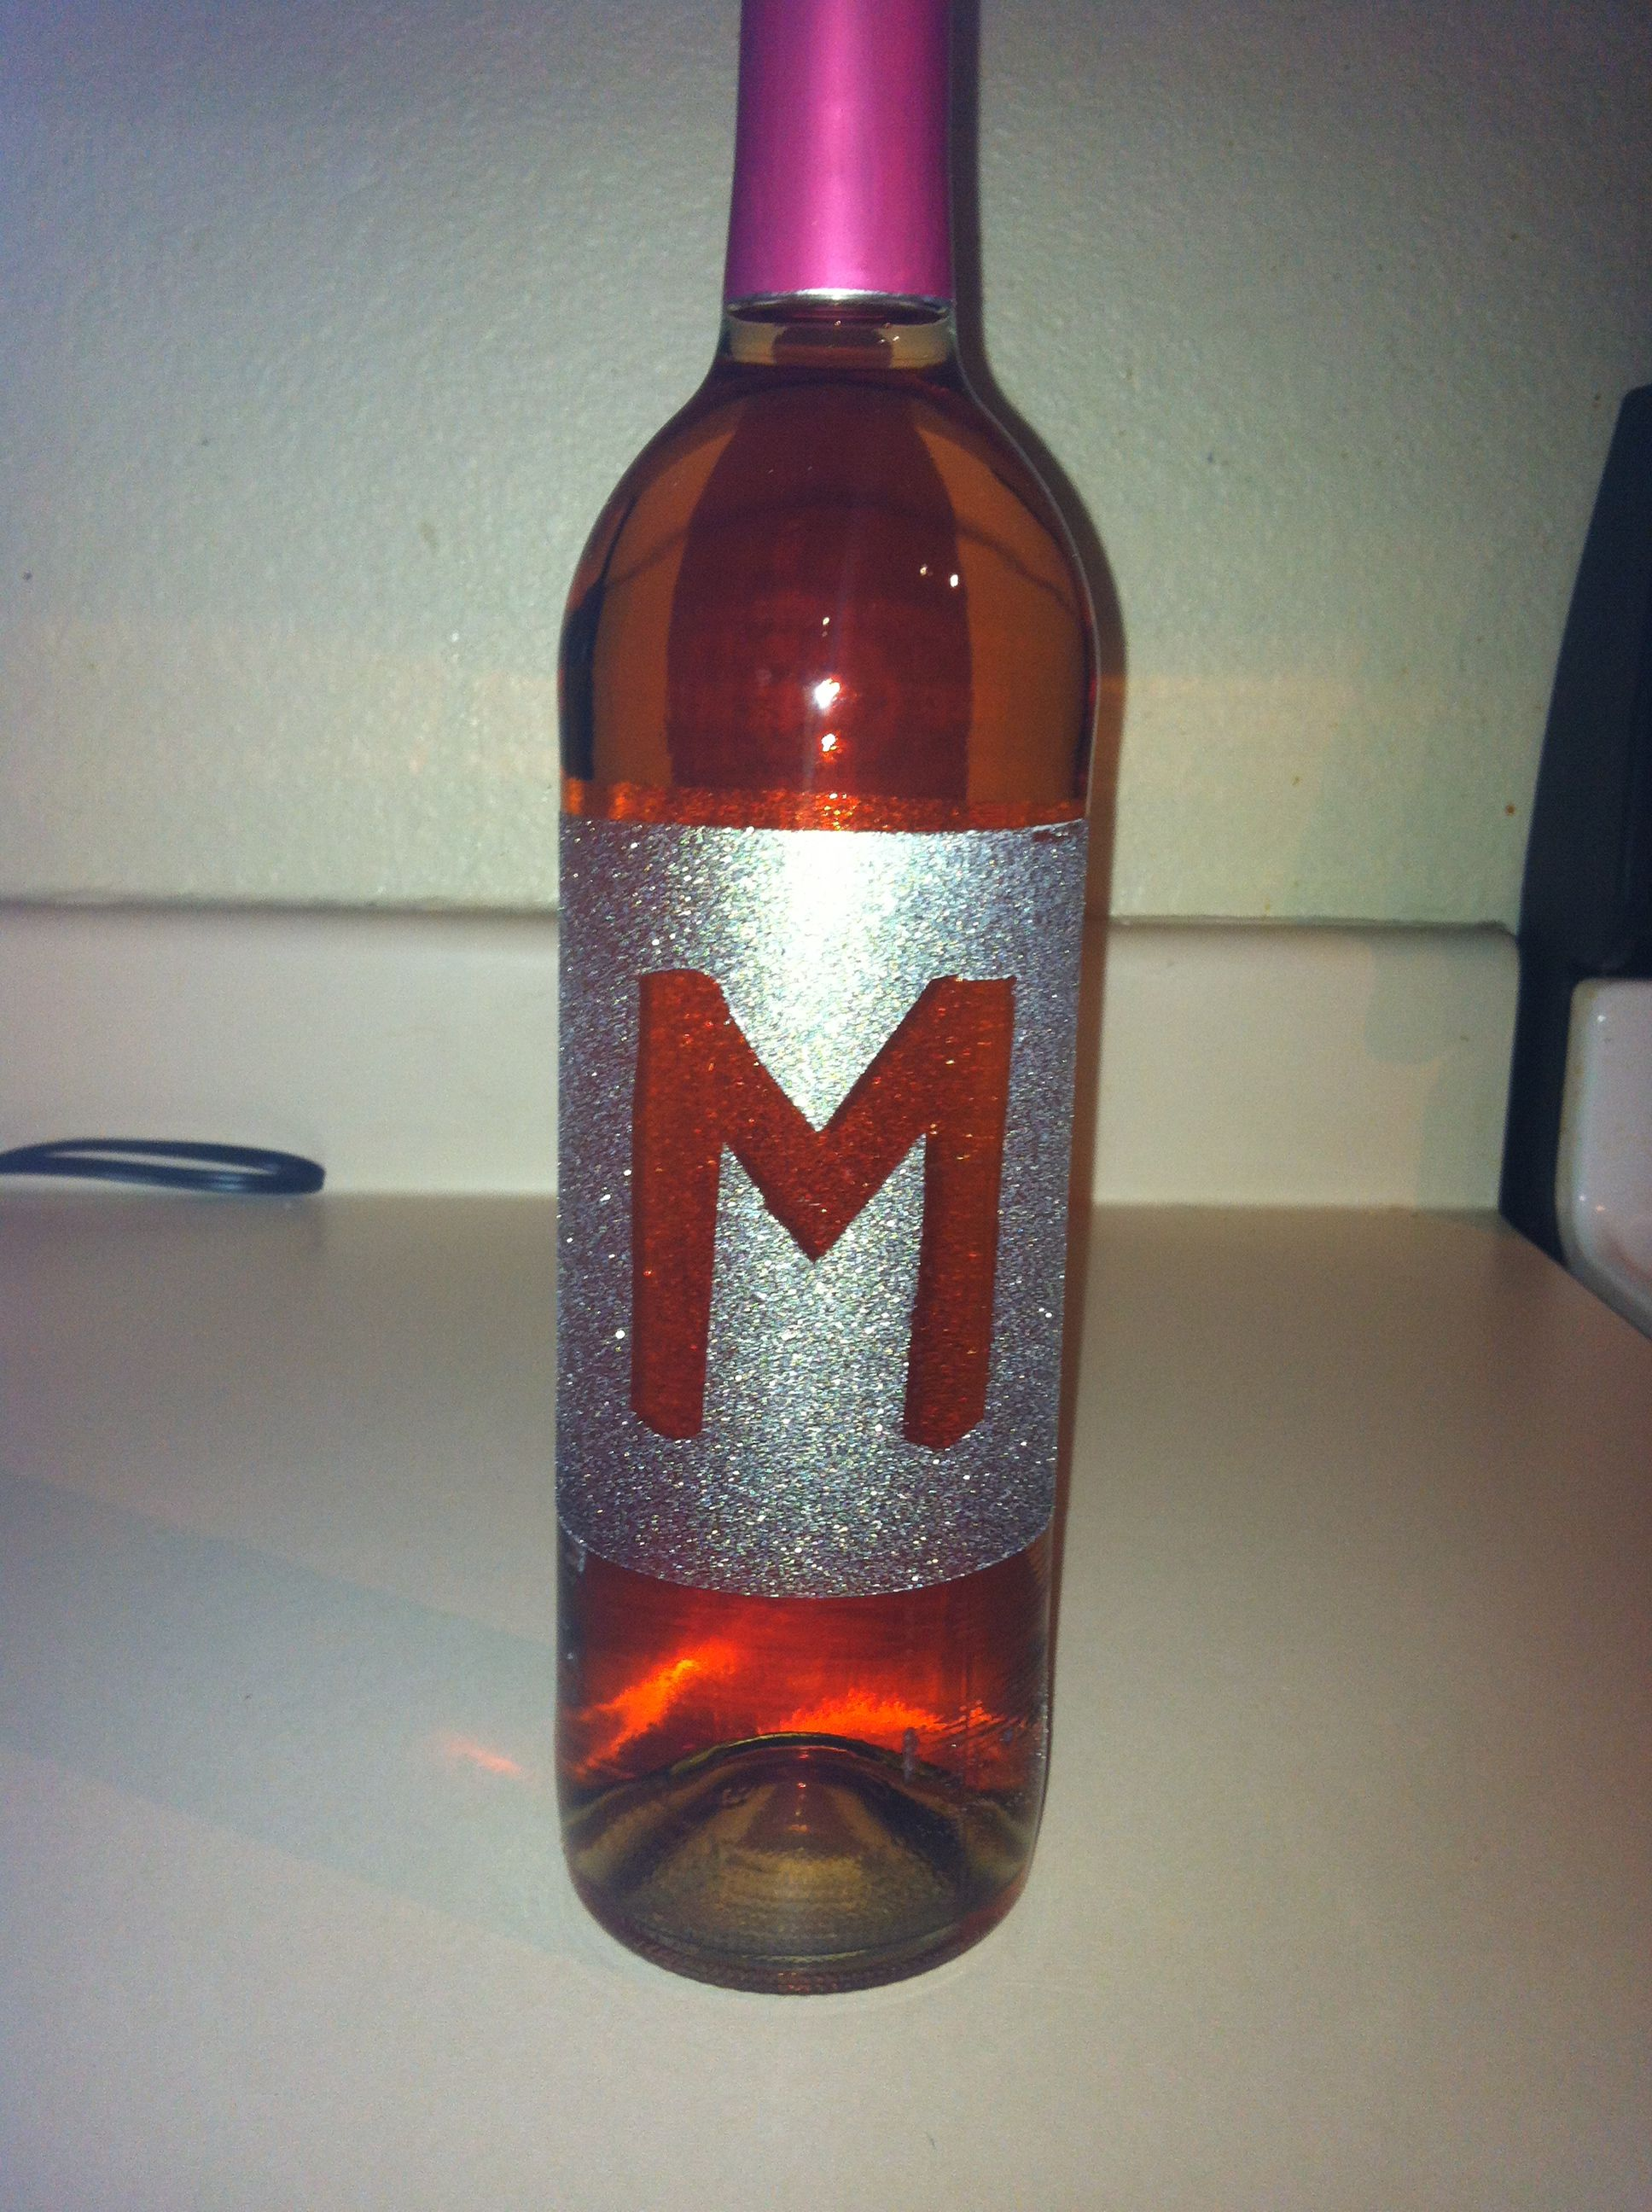 Took A Cheap Bottle Of Wine Scraped Off The Label Outlined It With Painters Tape And Spray Painted With Glitter Perfe Wine Bottle Wine Bottle Corks Bottle